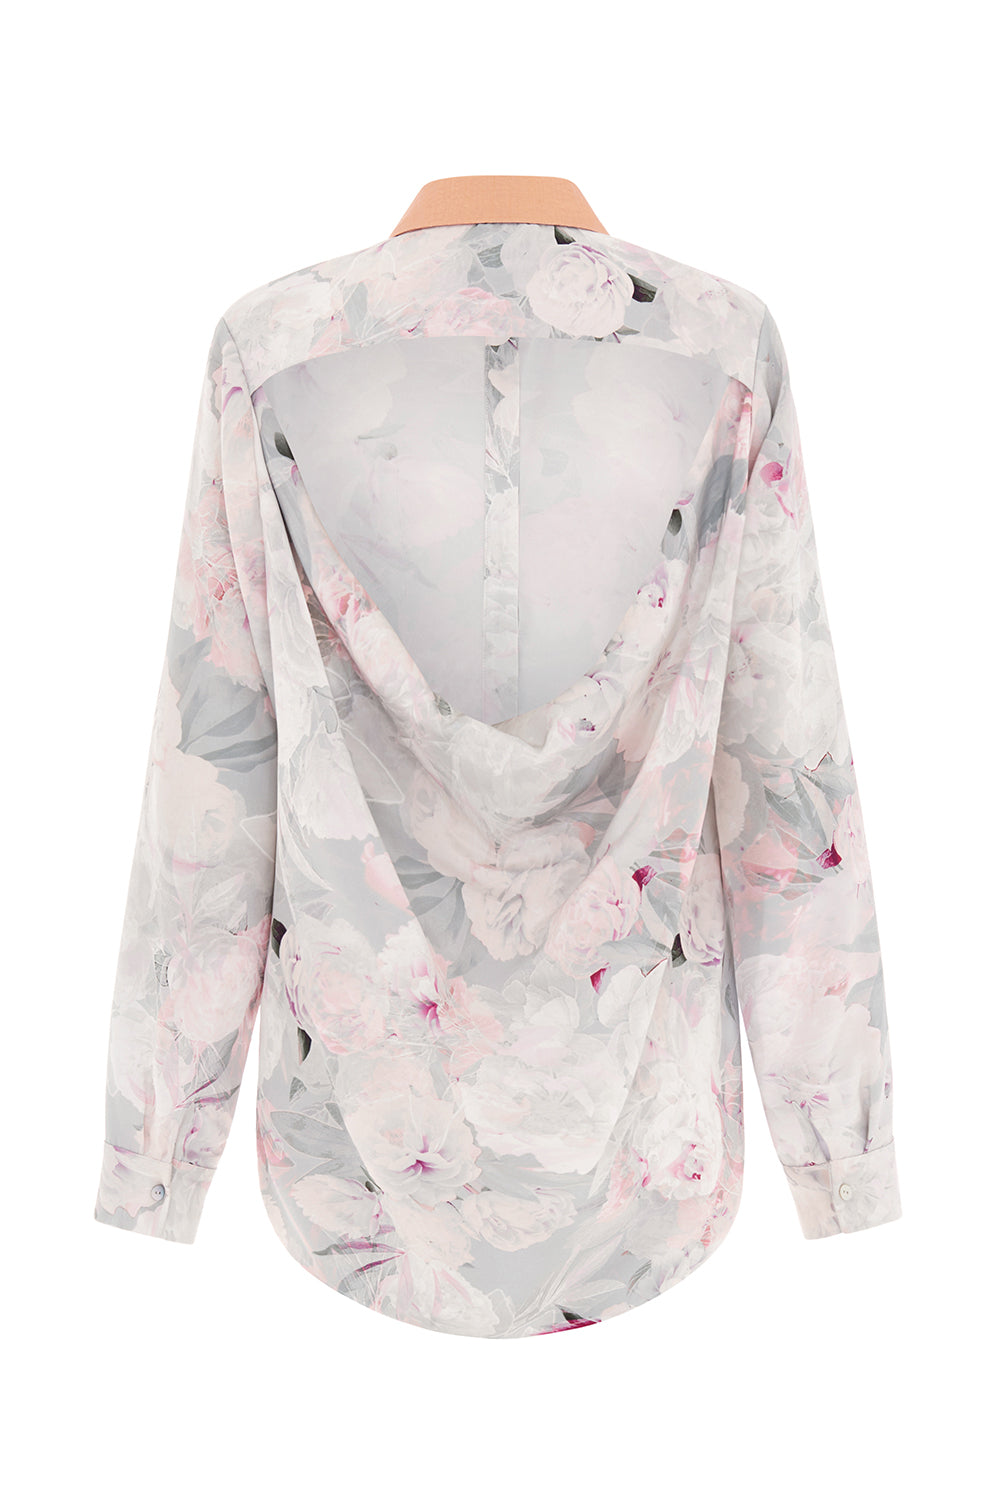 The Rose Silk Print Backless Shirt